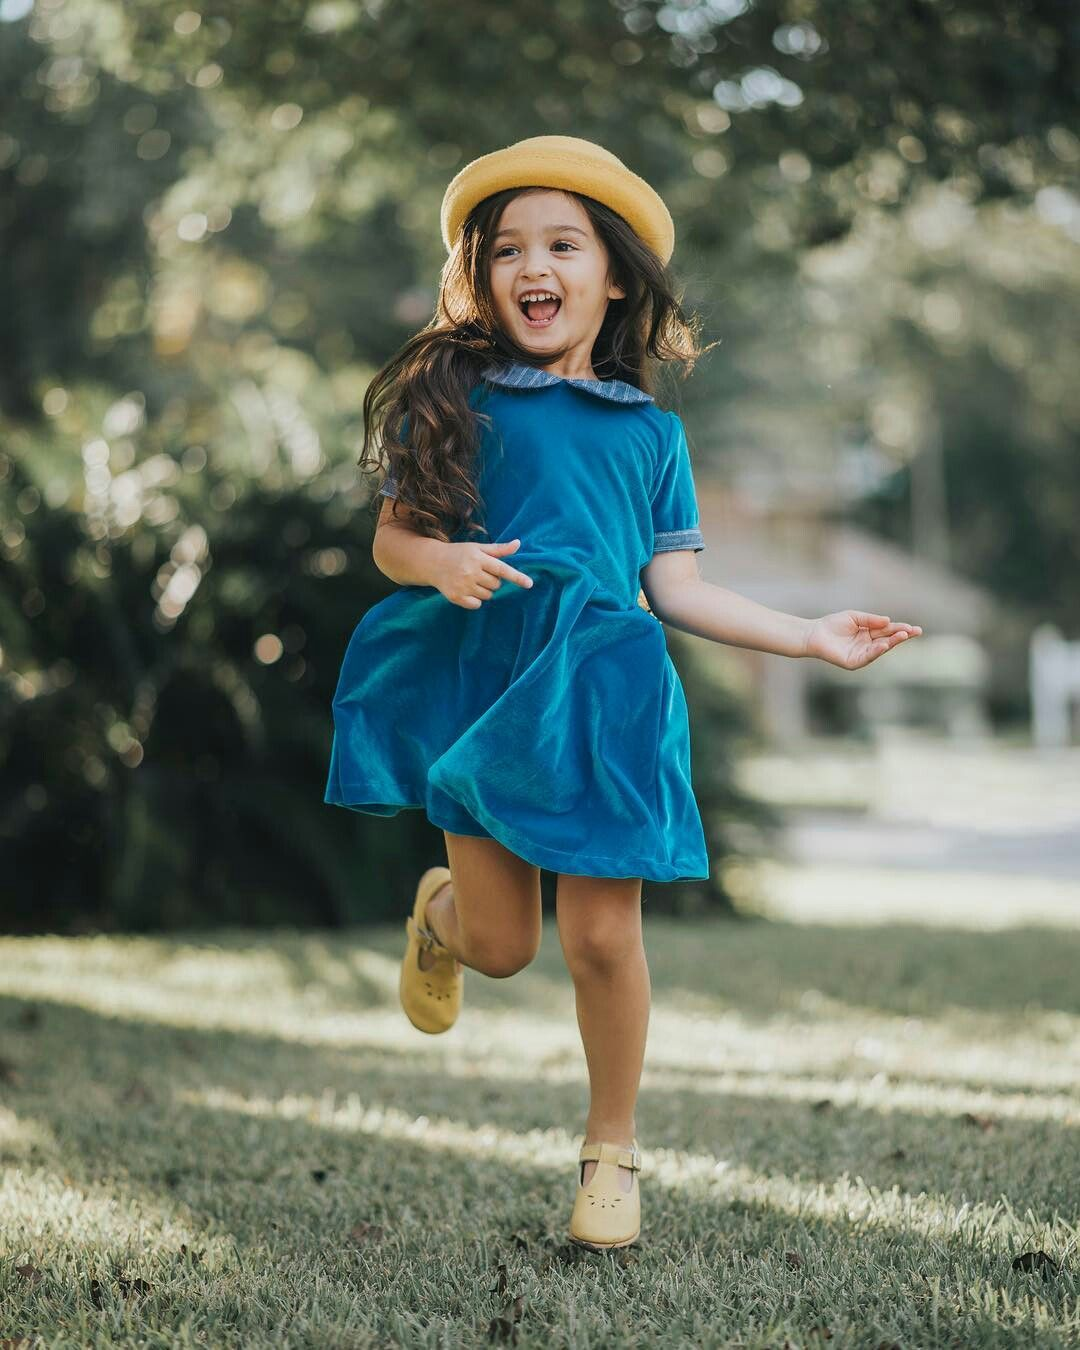 Pin By Ssesso Queen On Scout Cutie Pie Cute Small Girl Little Girl Photography Cute Baby Girl Images